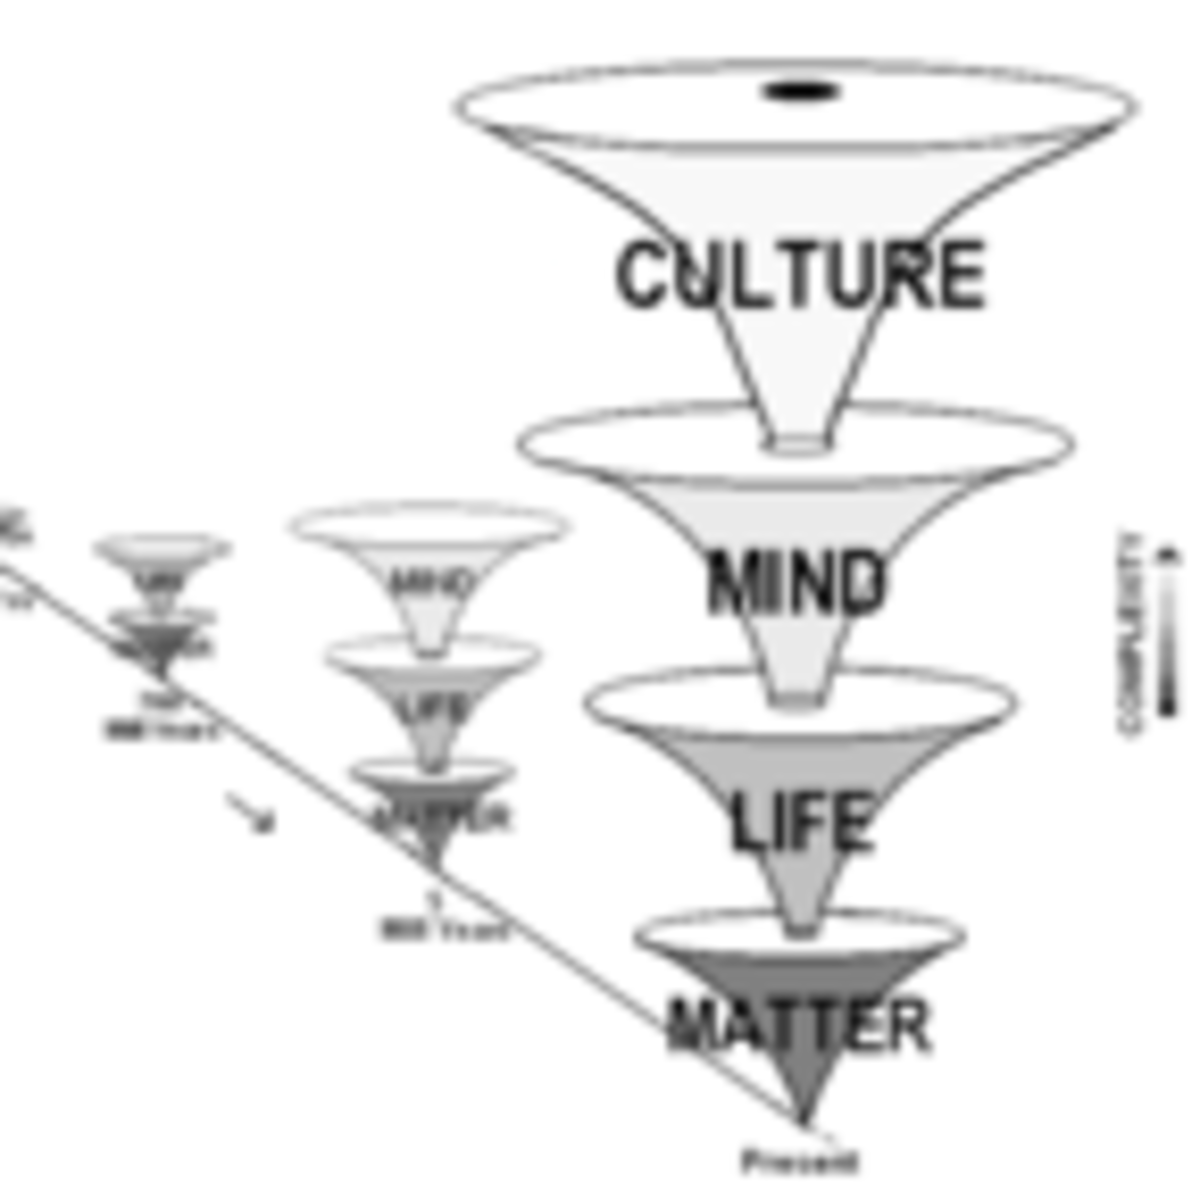 Empirical Support for the Tree of Knowledge System